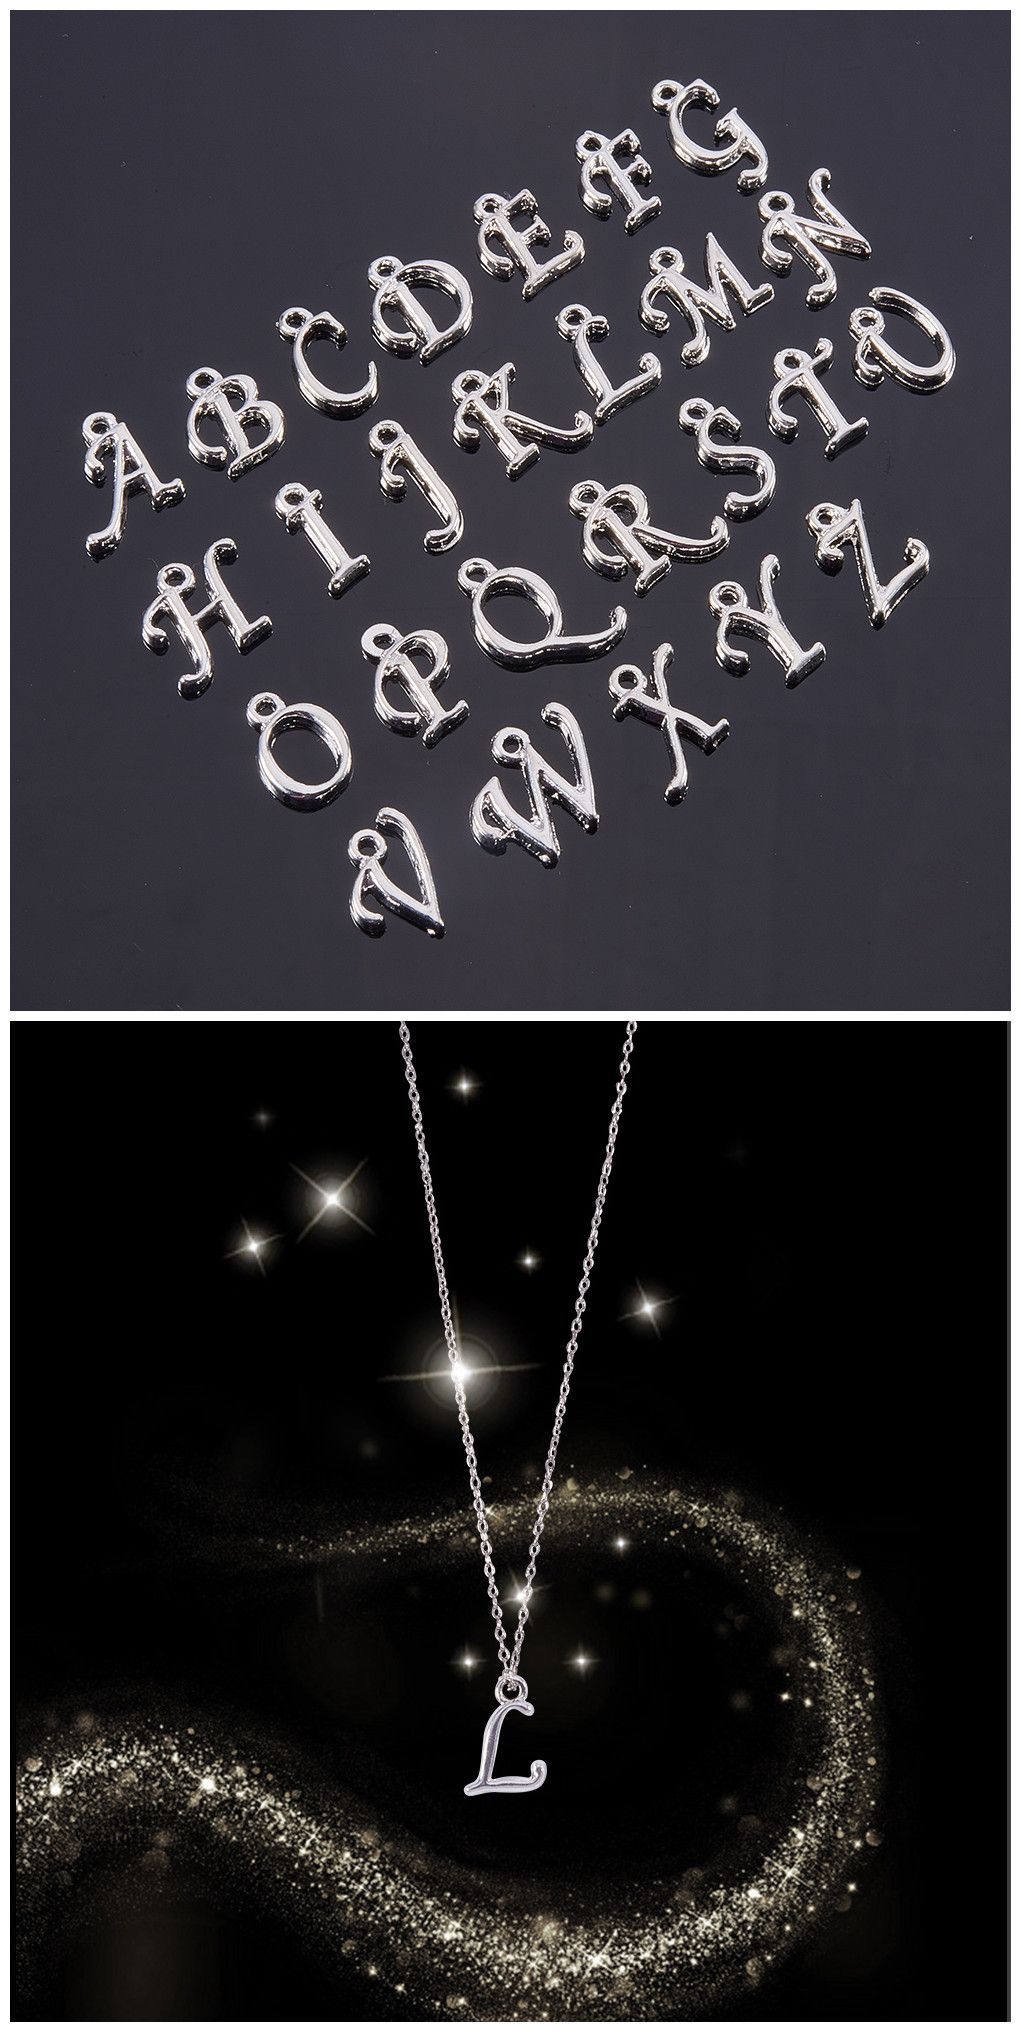 Pandahall Elite 208pcs Assorted Alloy Alphabet Charm Pendant Loose Beads Silver Plated A Z Letter Pendant For Jewelry Making 8 Pcs For Each Letter Beebeecraft Letter Pendants Charm Pendant Jewelry